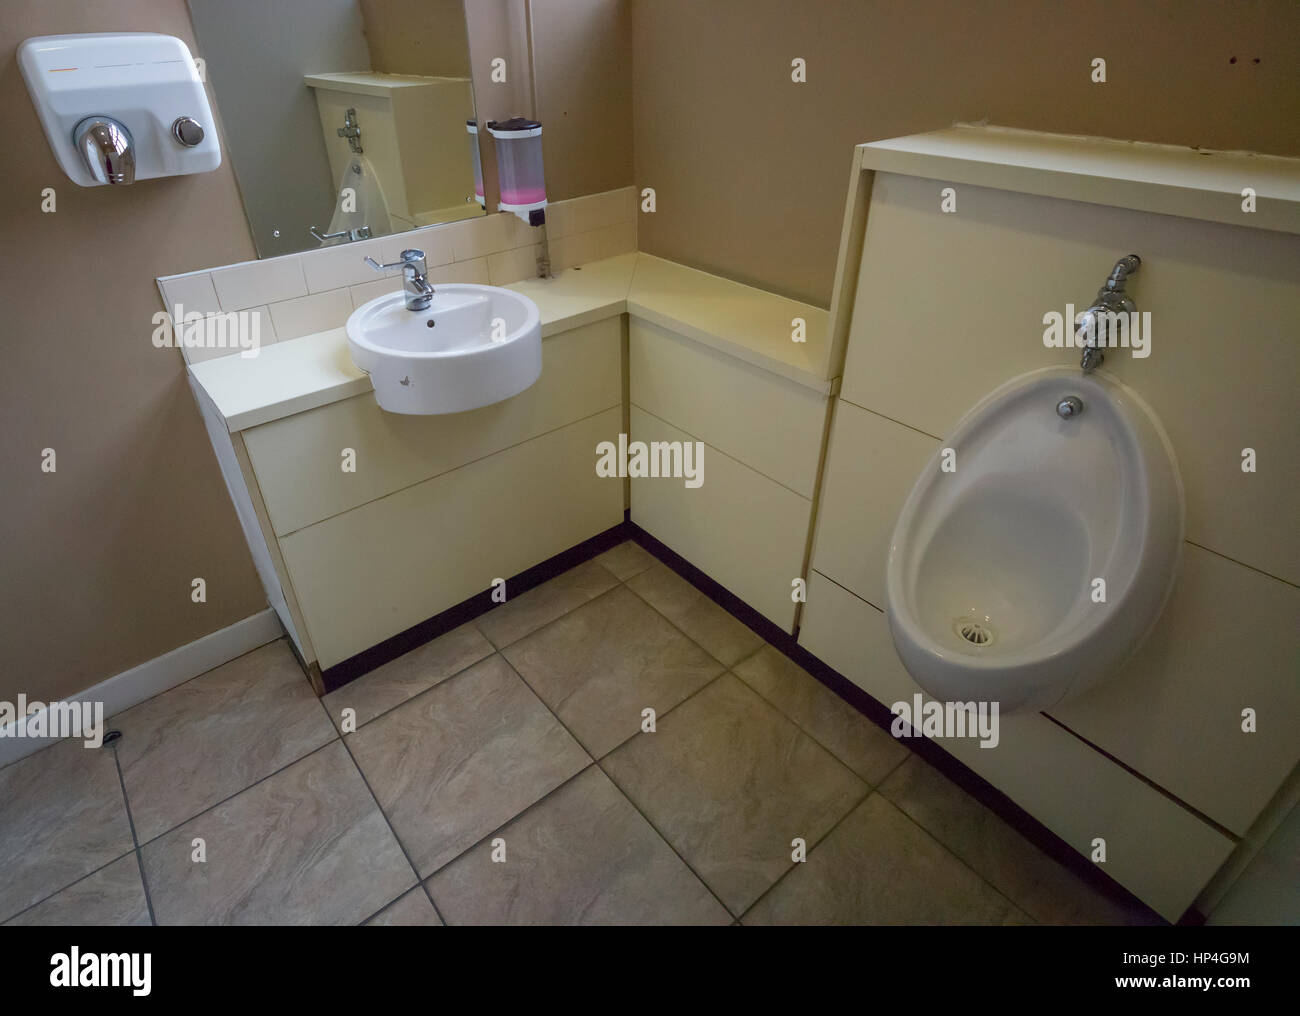 Hot air dryer, washbasin, mirror, soap dispenser, and urinal in toilet,